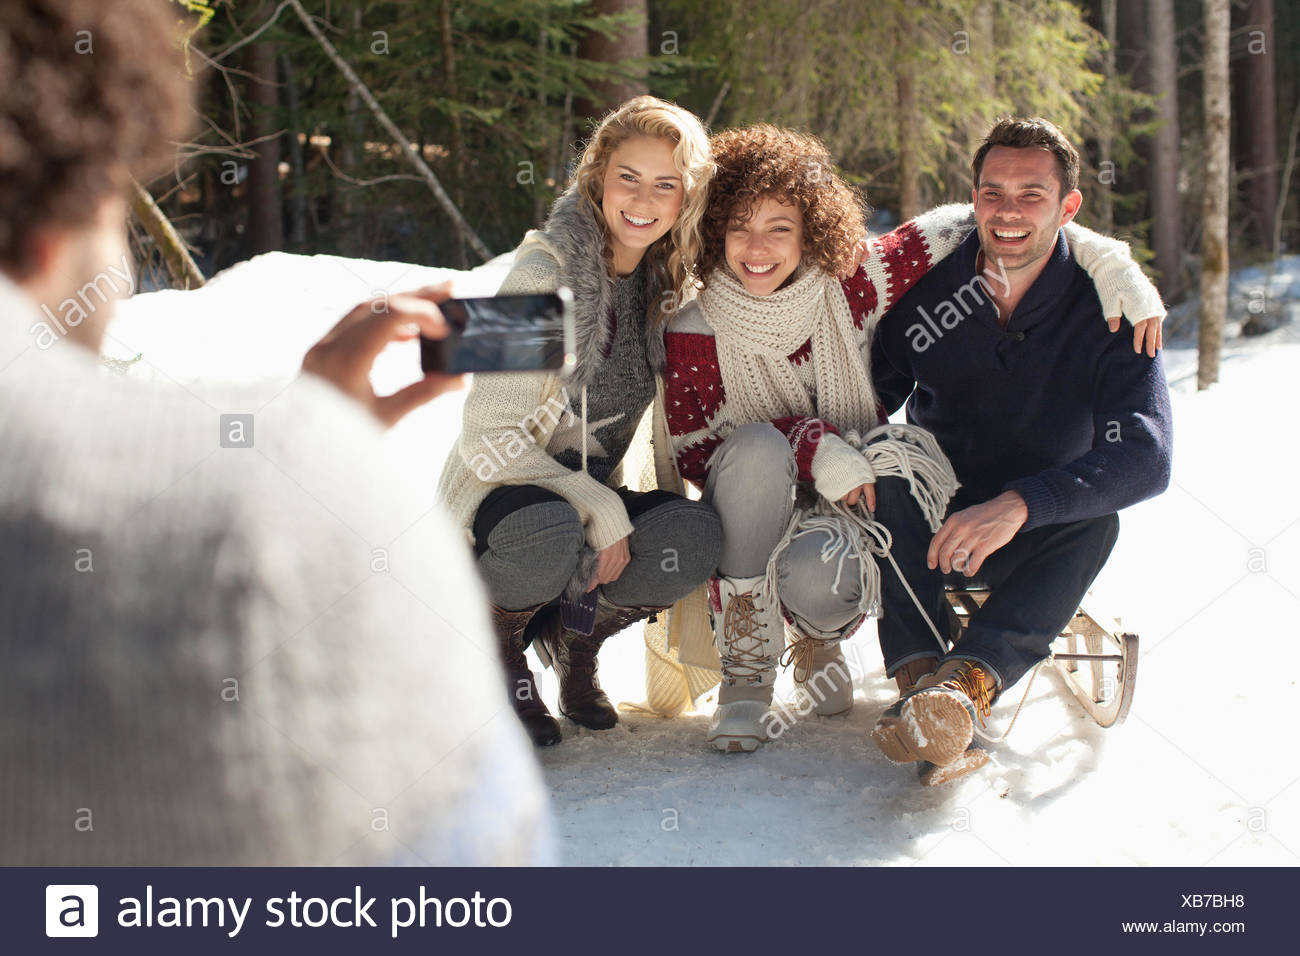 Man photographing friends with sled - Stock Image